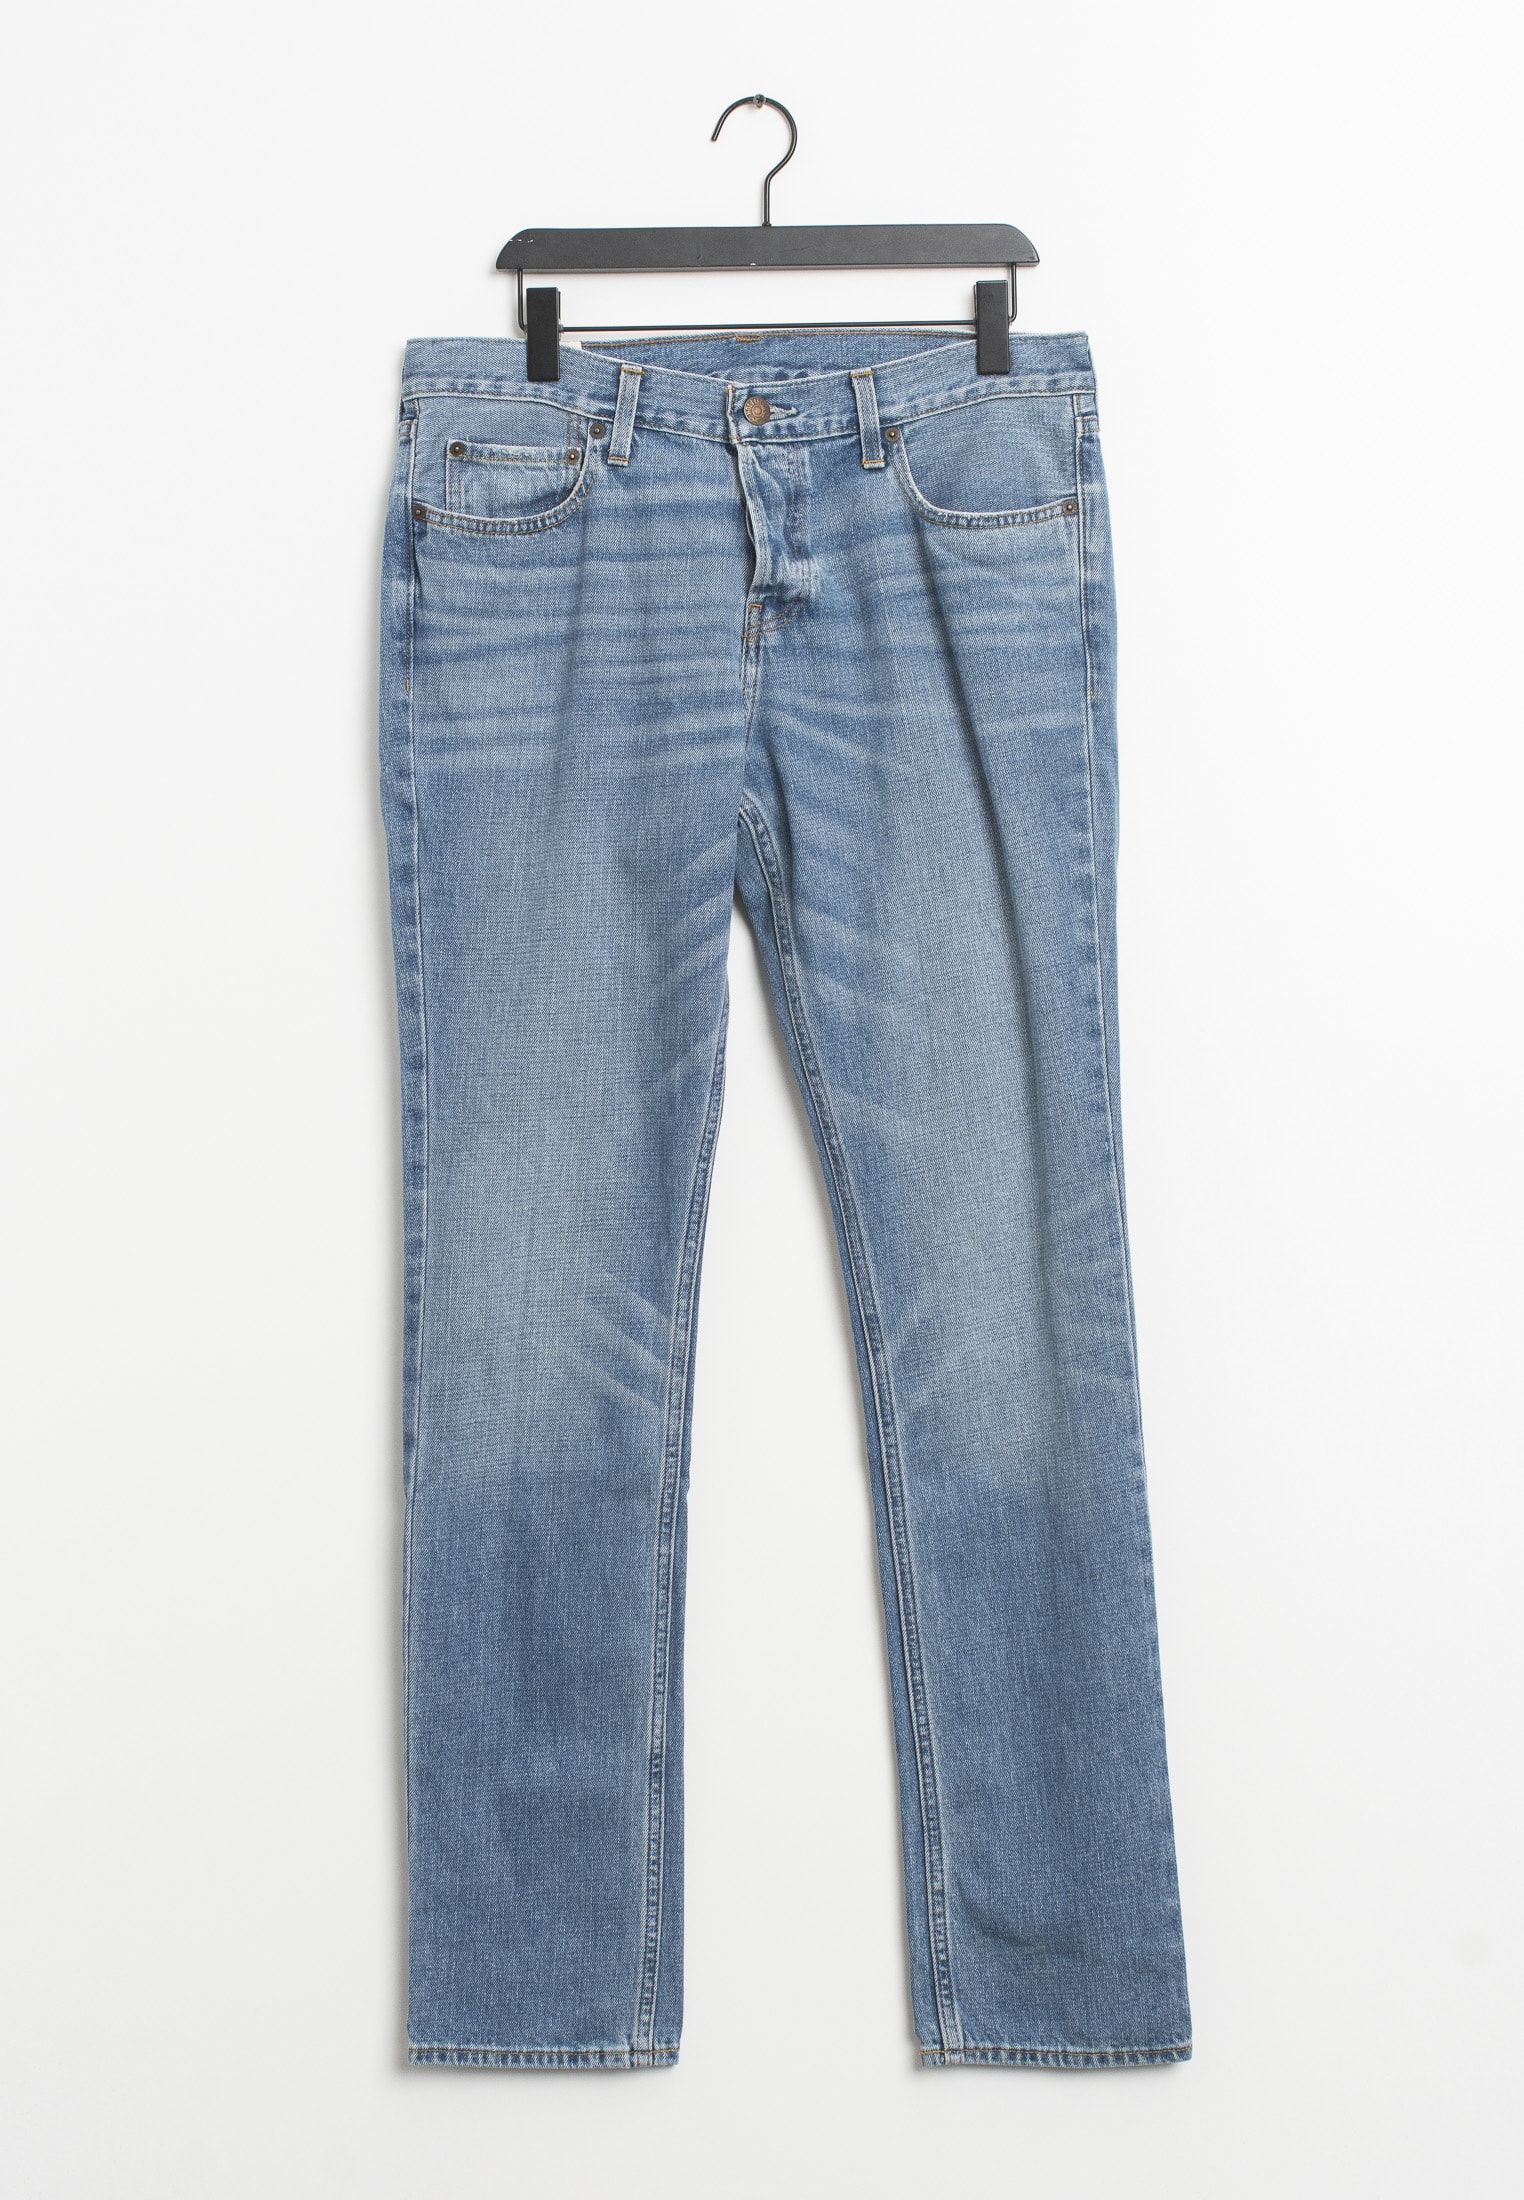 Hollister Co. Jeans Blau Gr.W34 L34